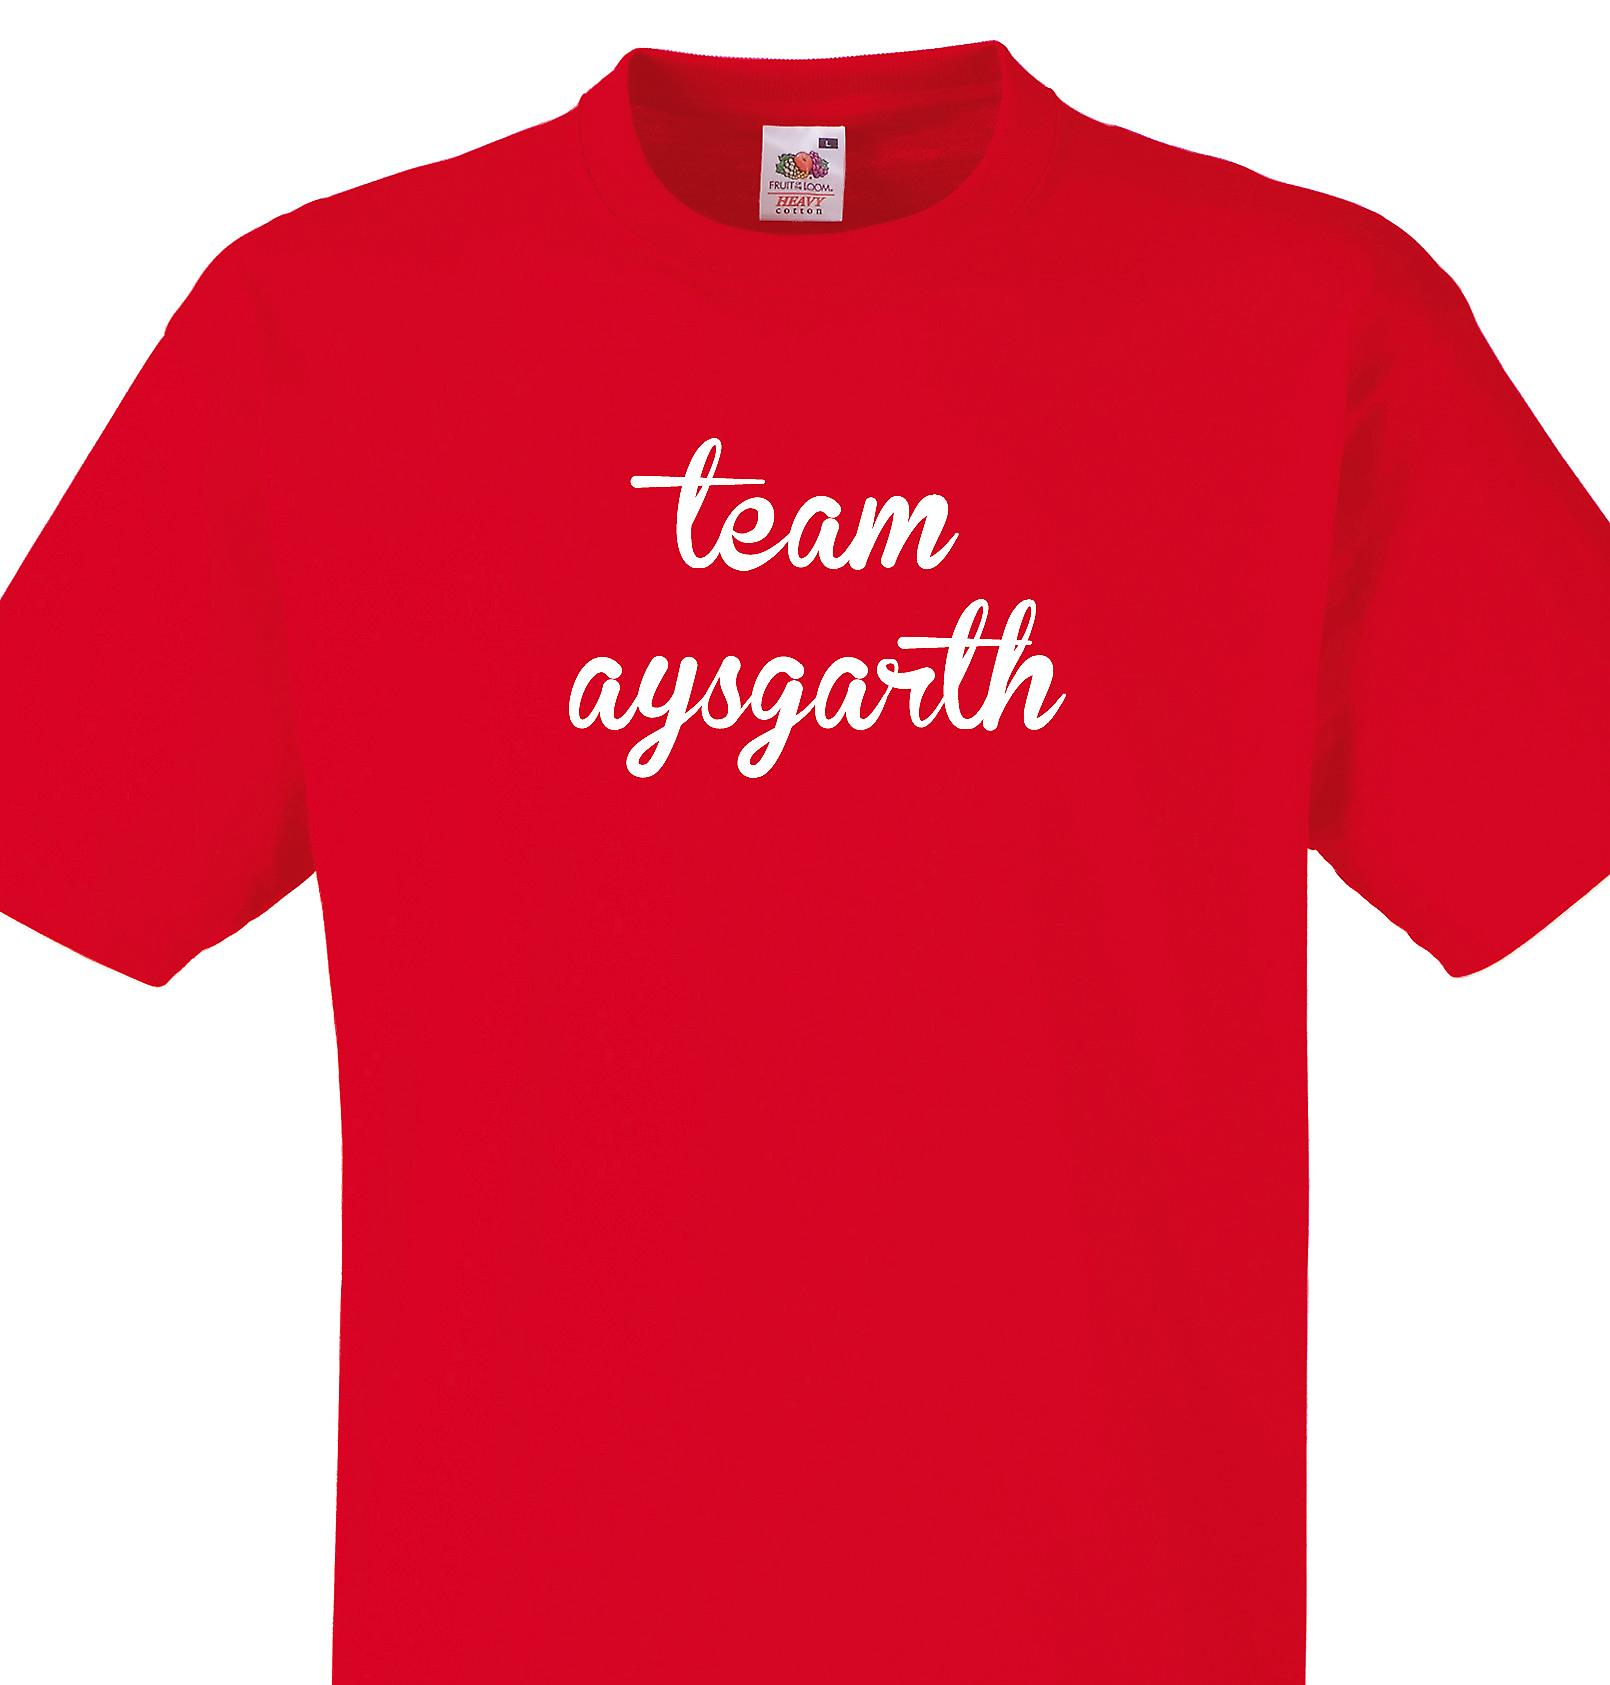 Team Aysgarth Red T shirt